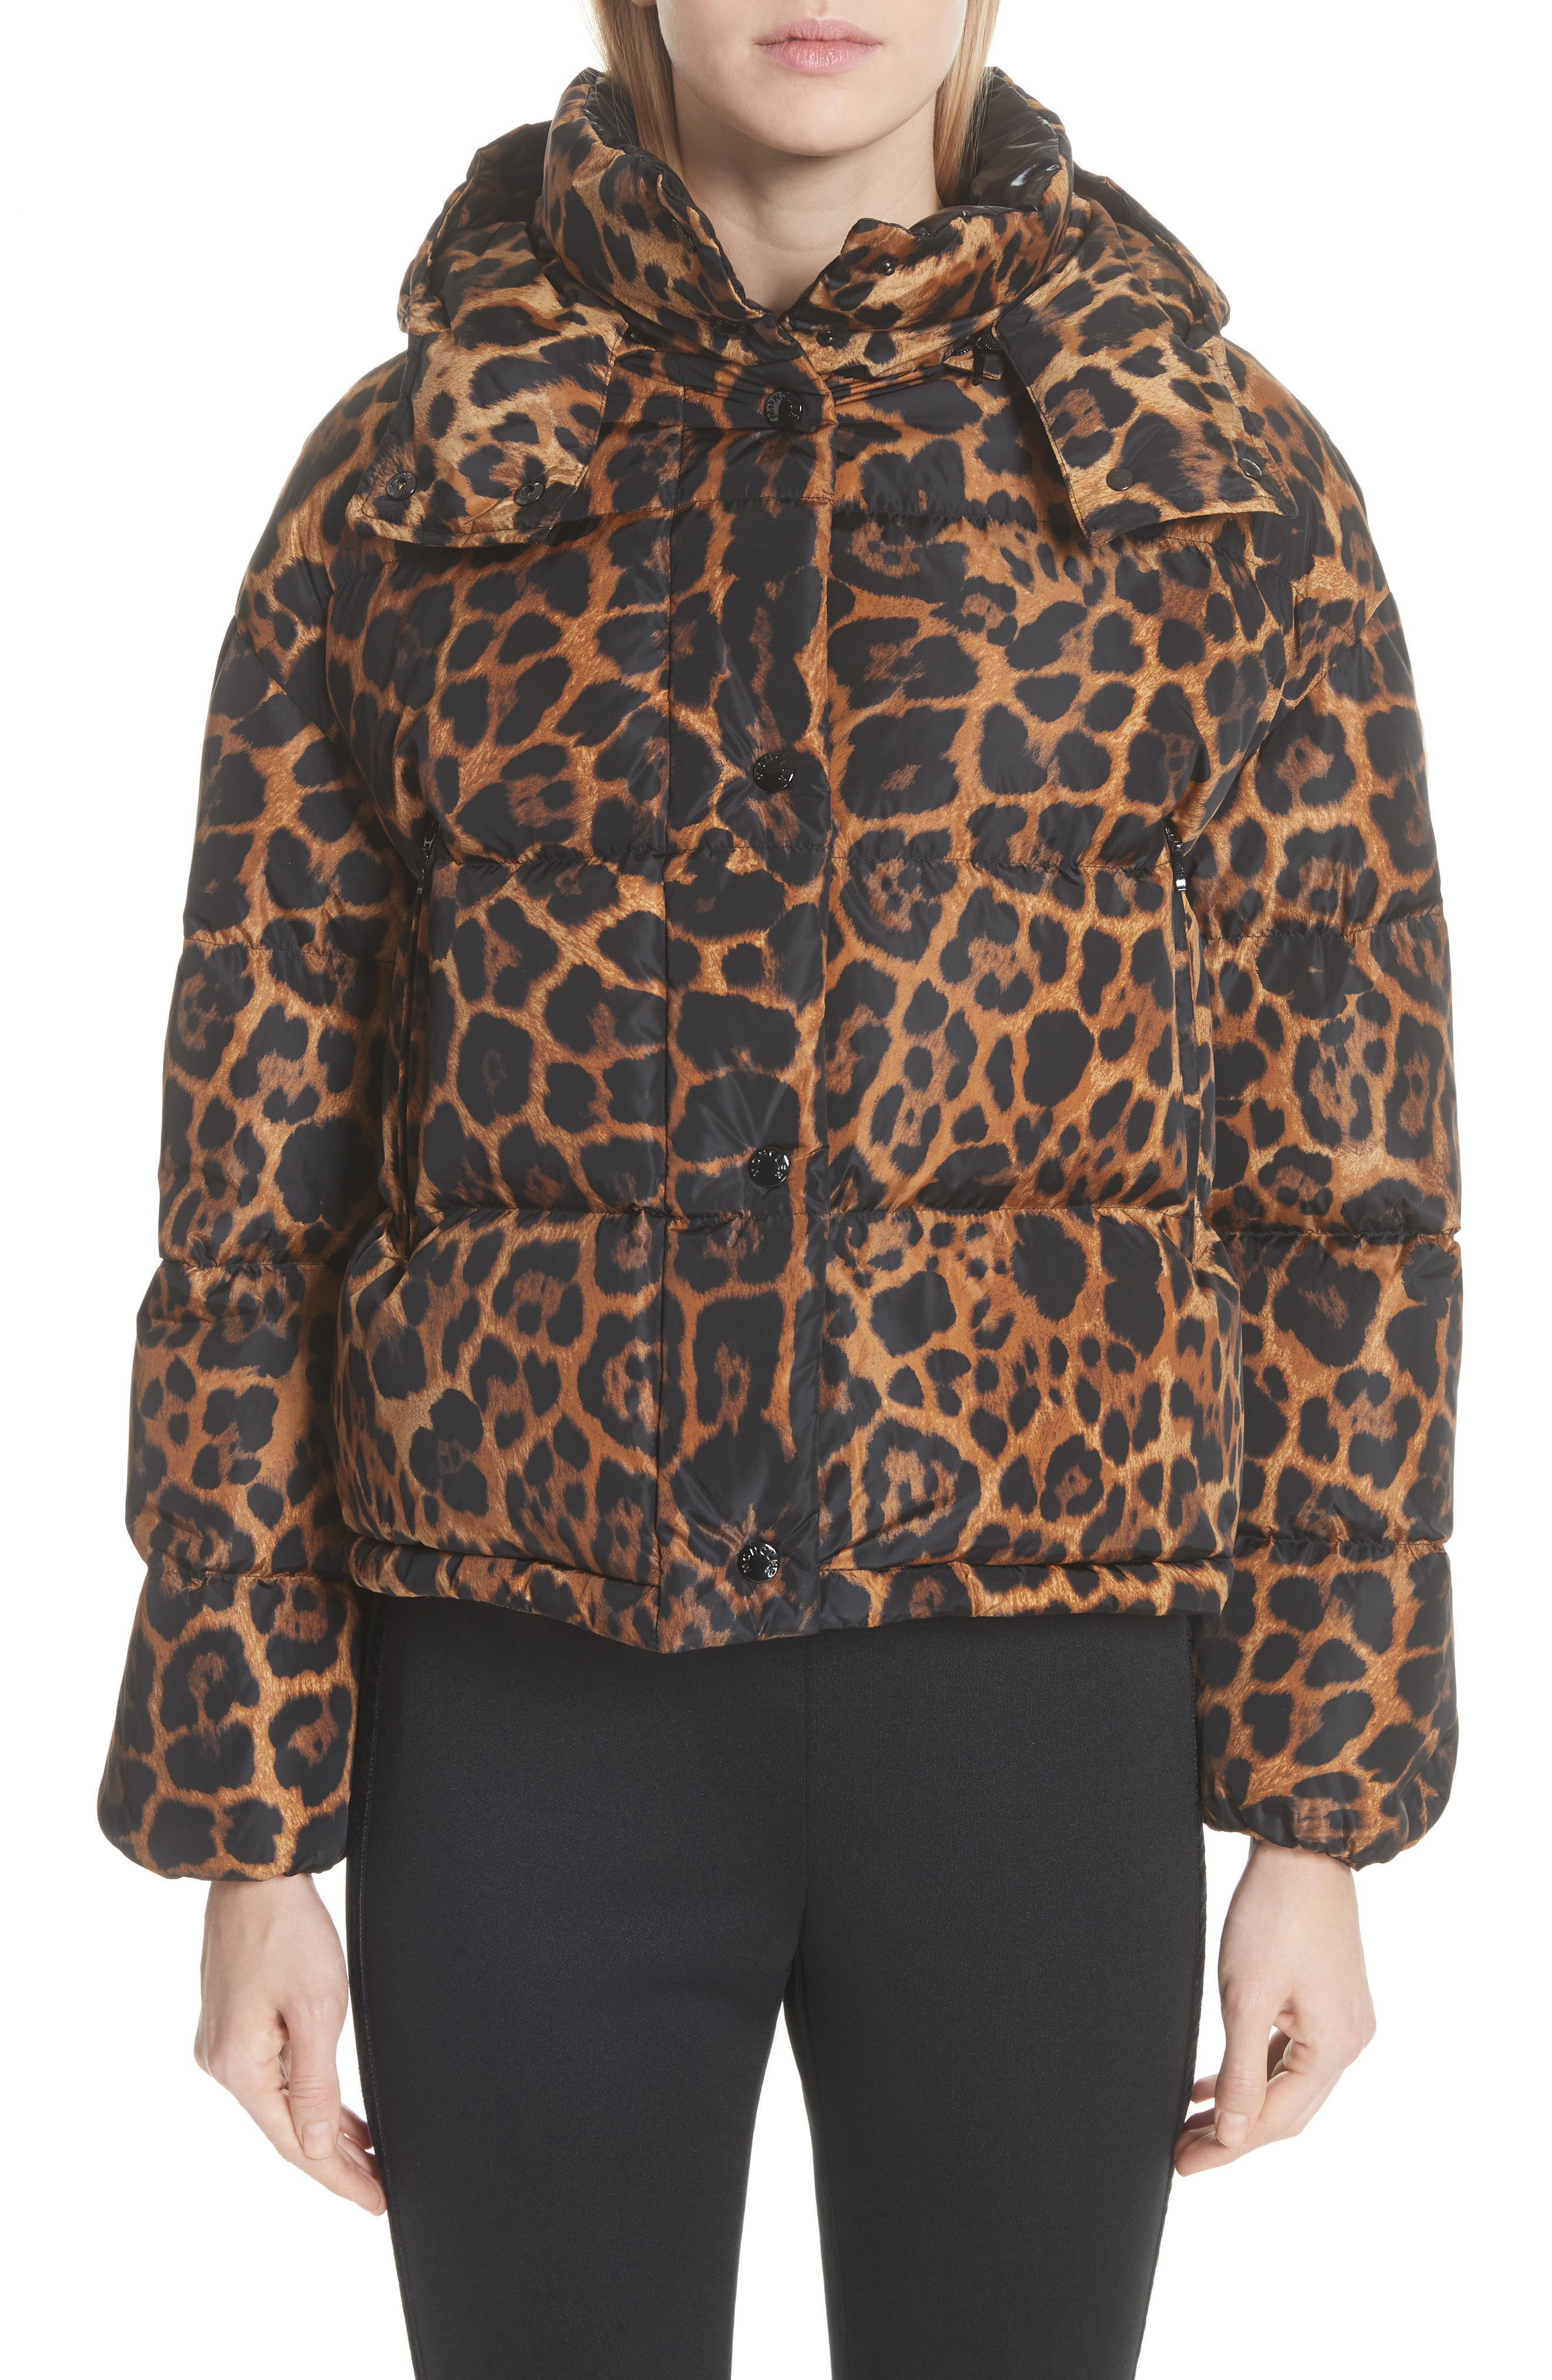 MONCLER, Caille Leopard Print Down Puffer Jacket, Main thumbnail 1, color, 240